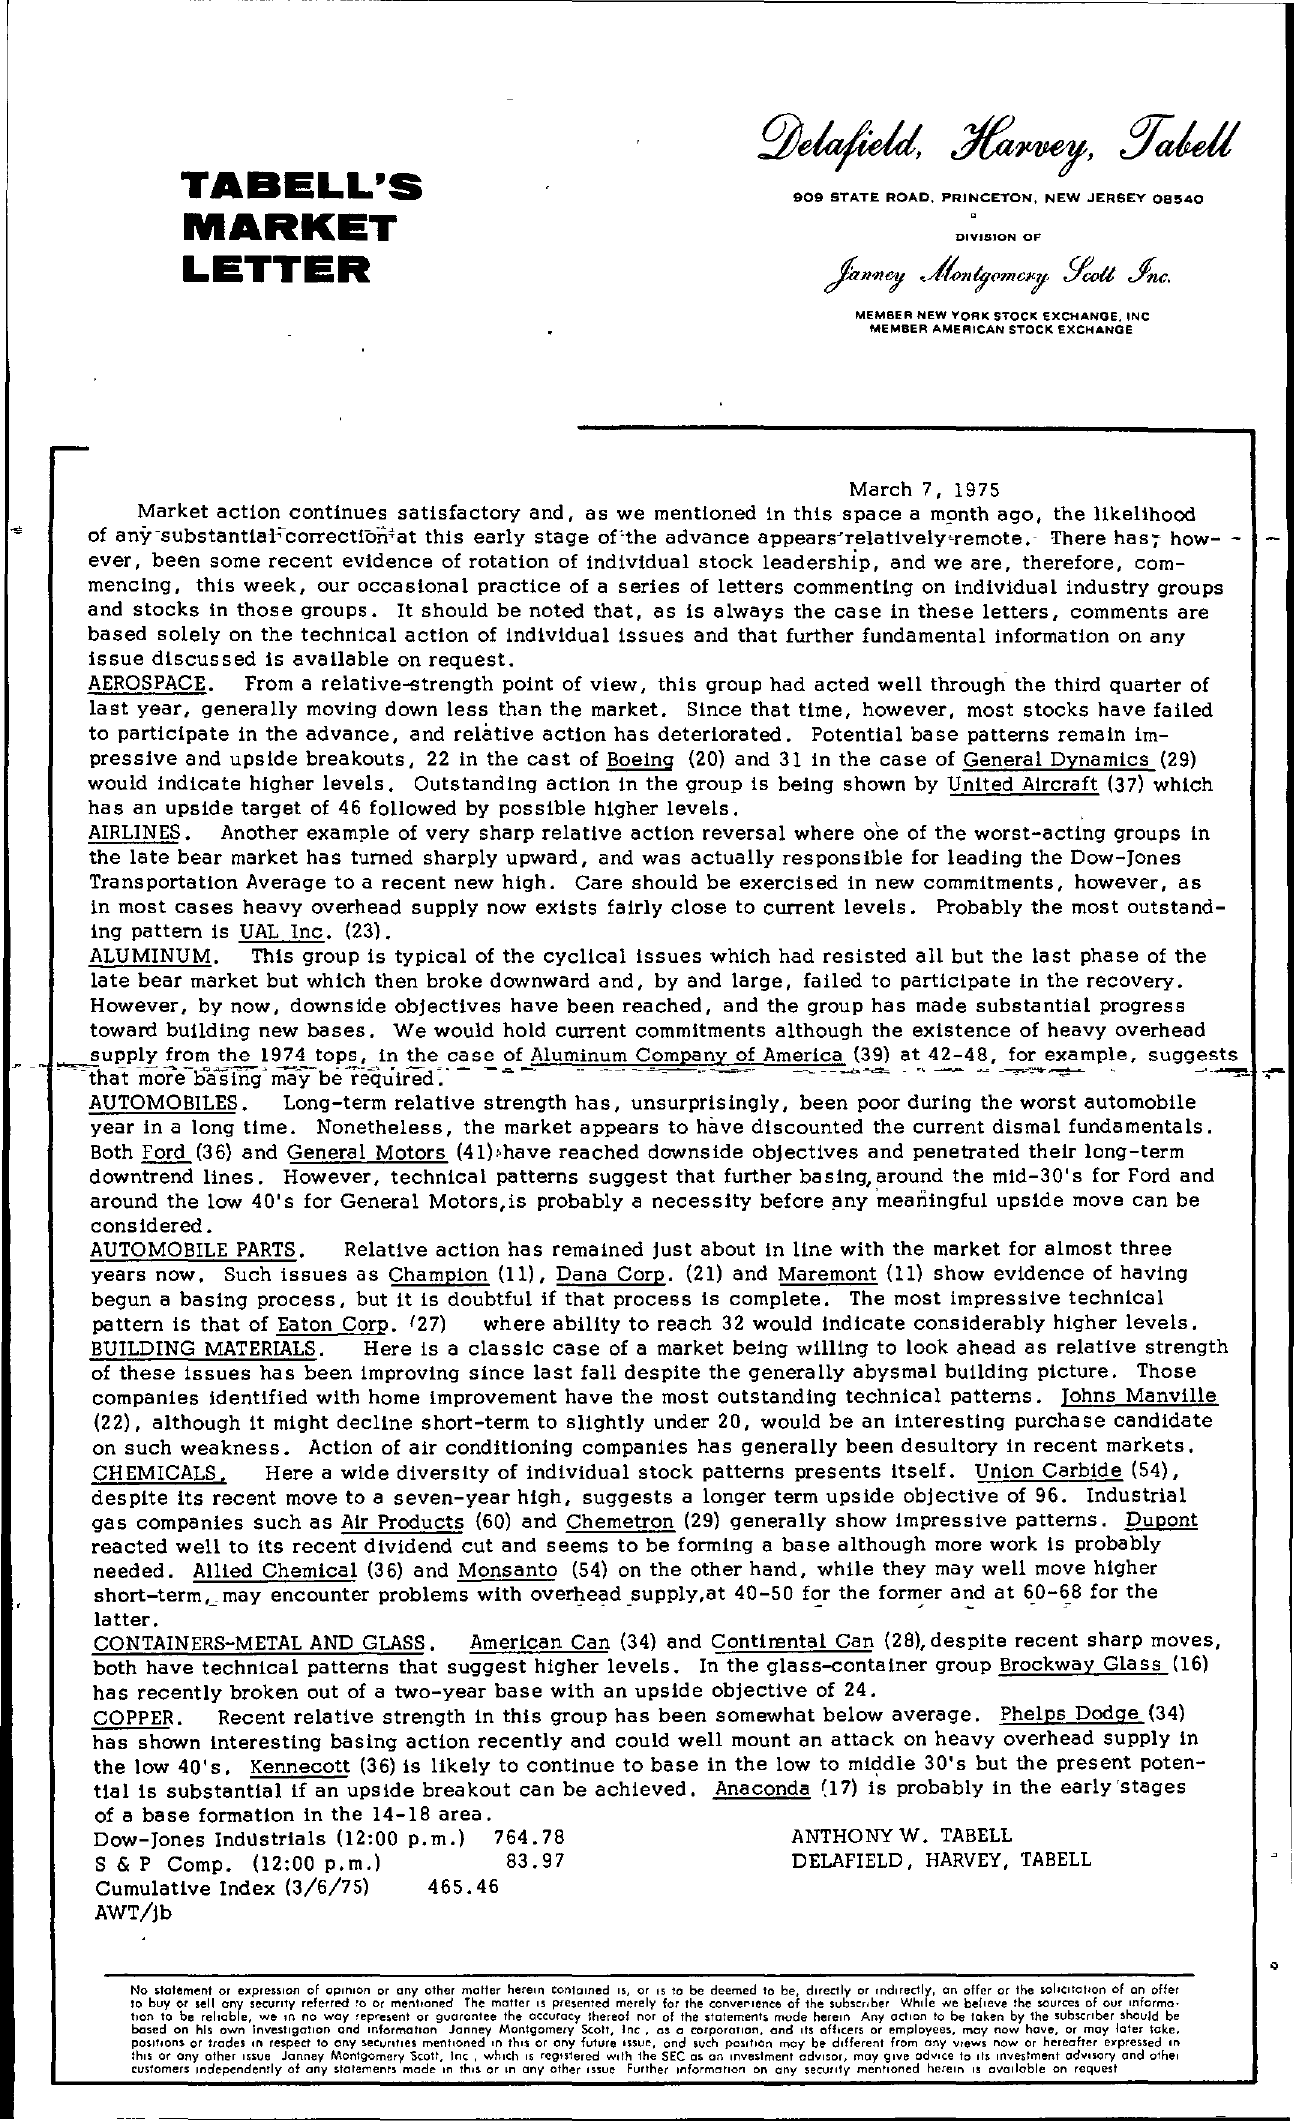 Tabell's Market Letter - March 07, 1975